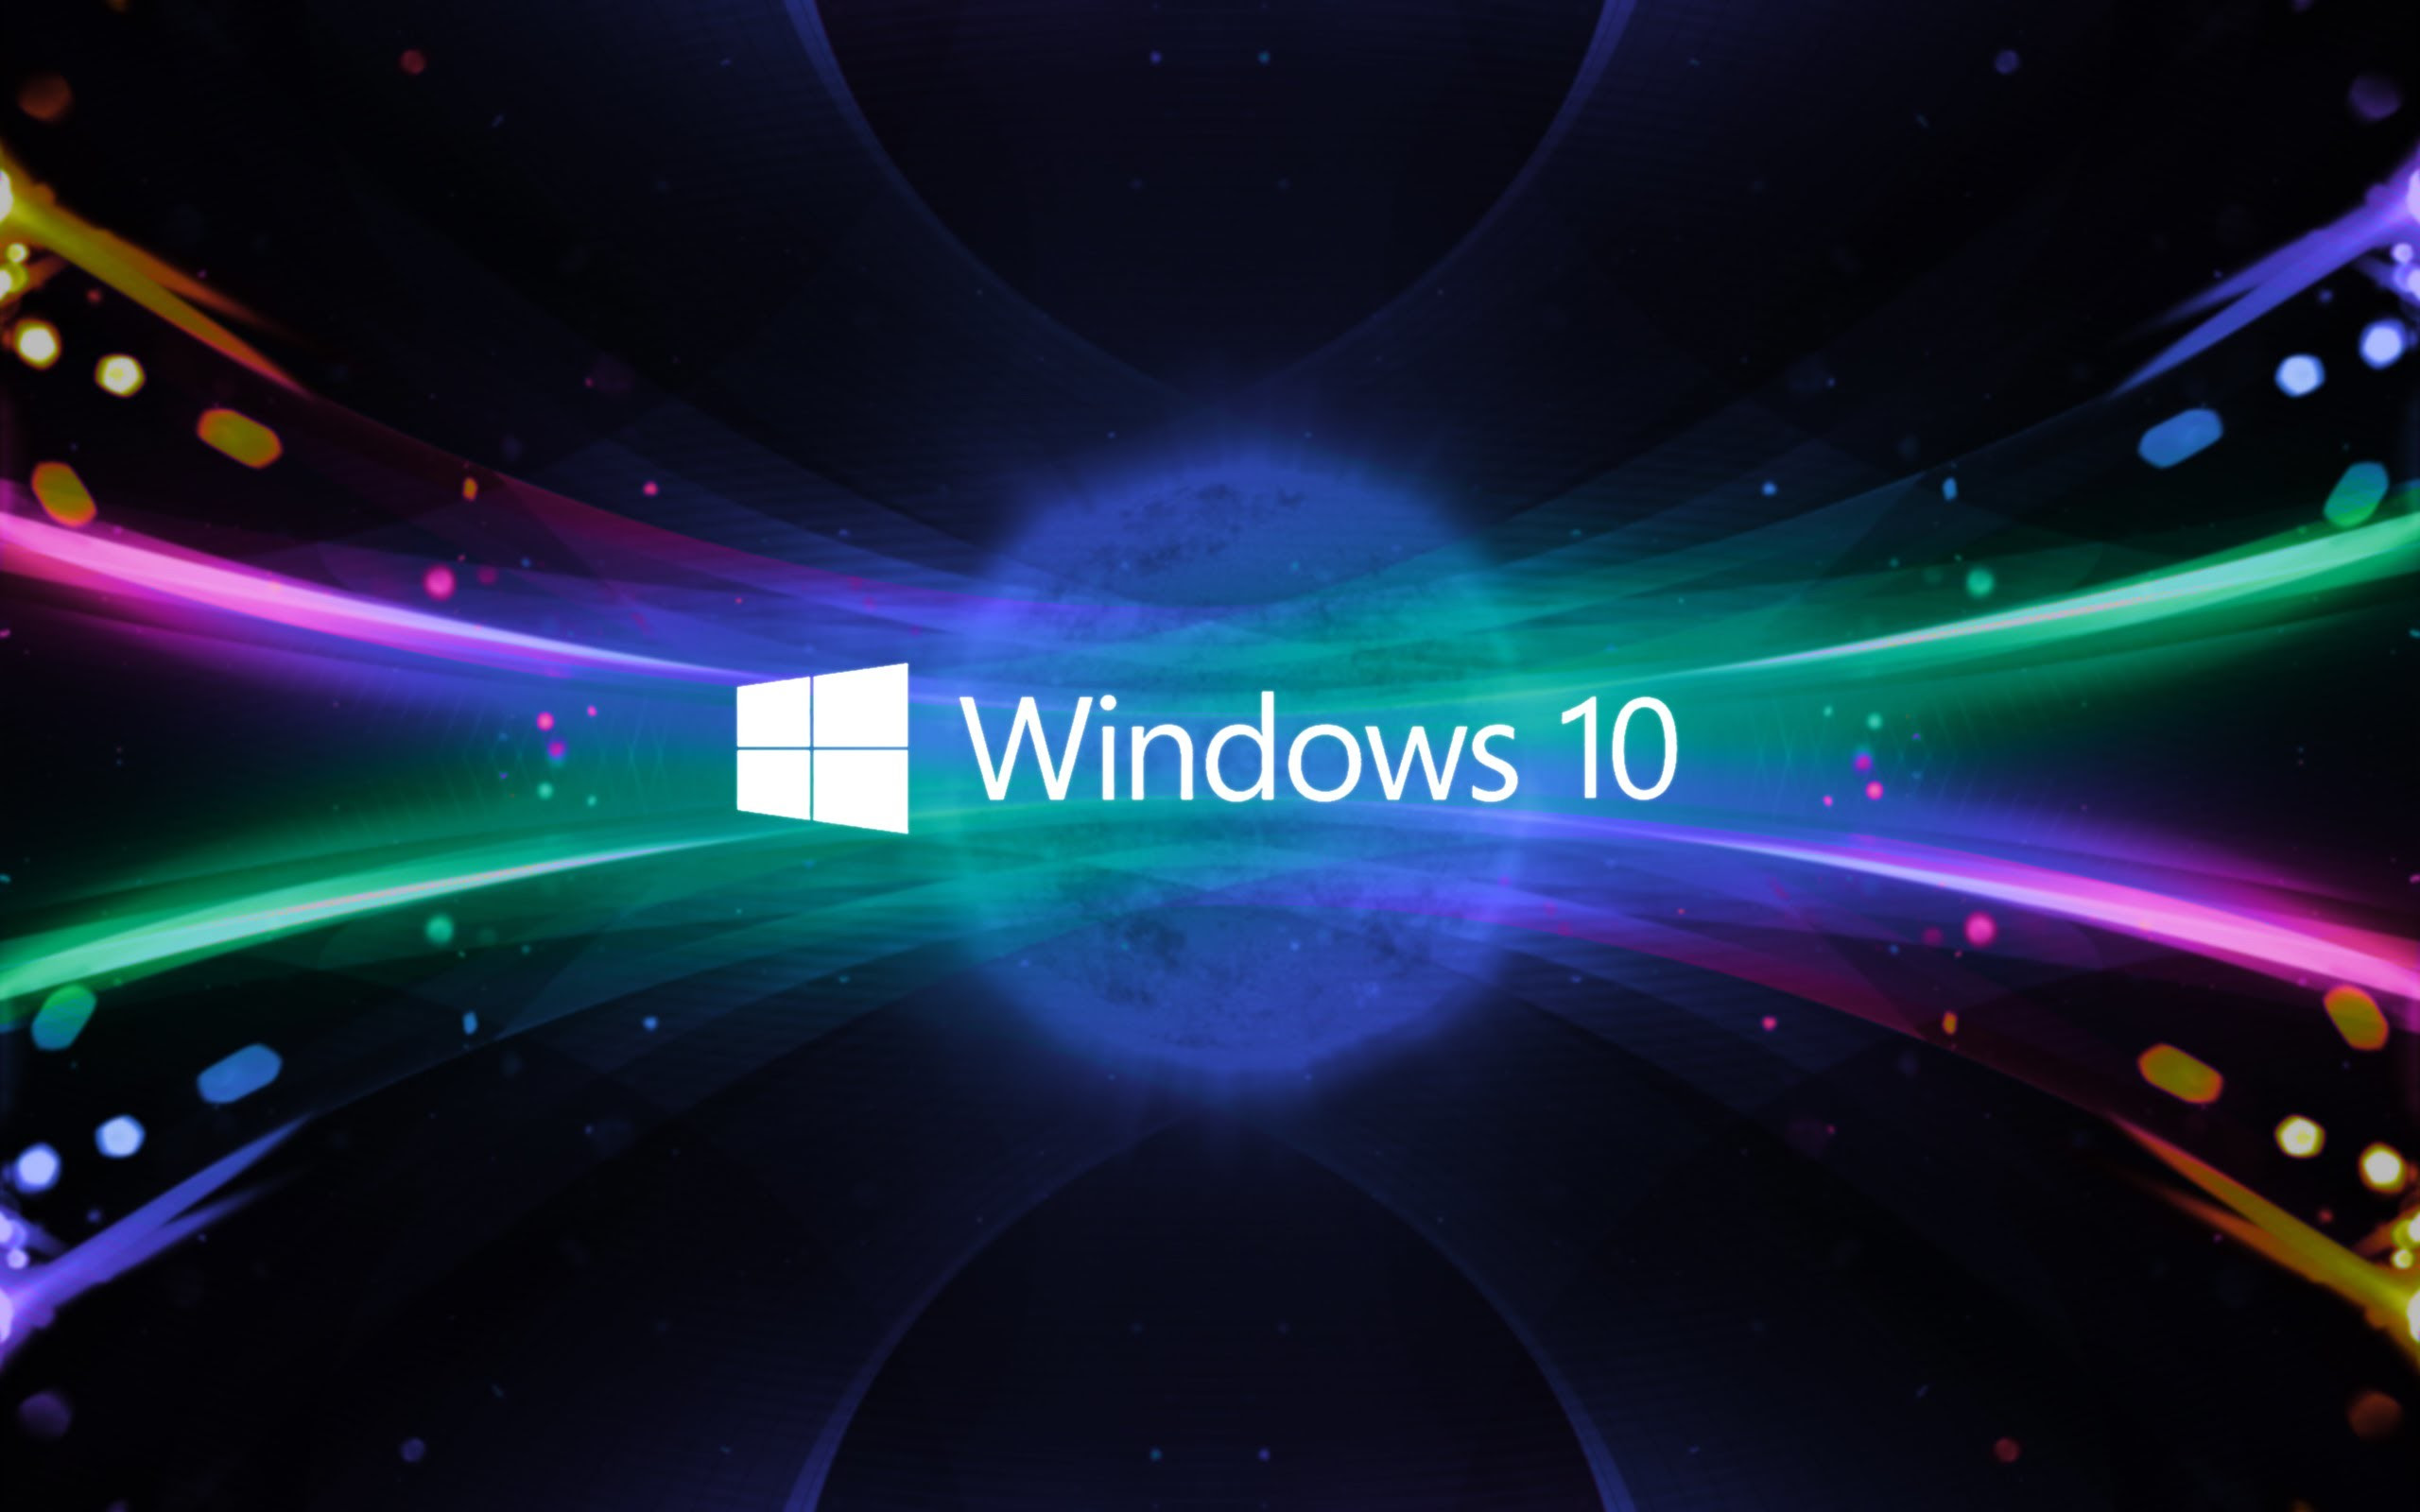 How To Set A Gif As A Wallpaper In Windows 10 Win10 Faq